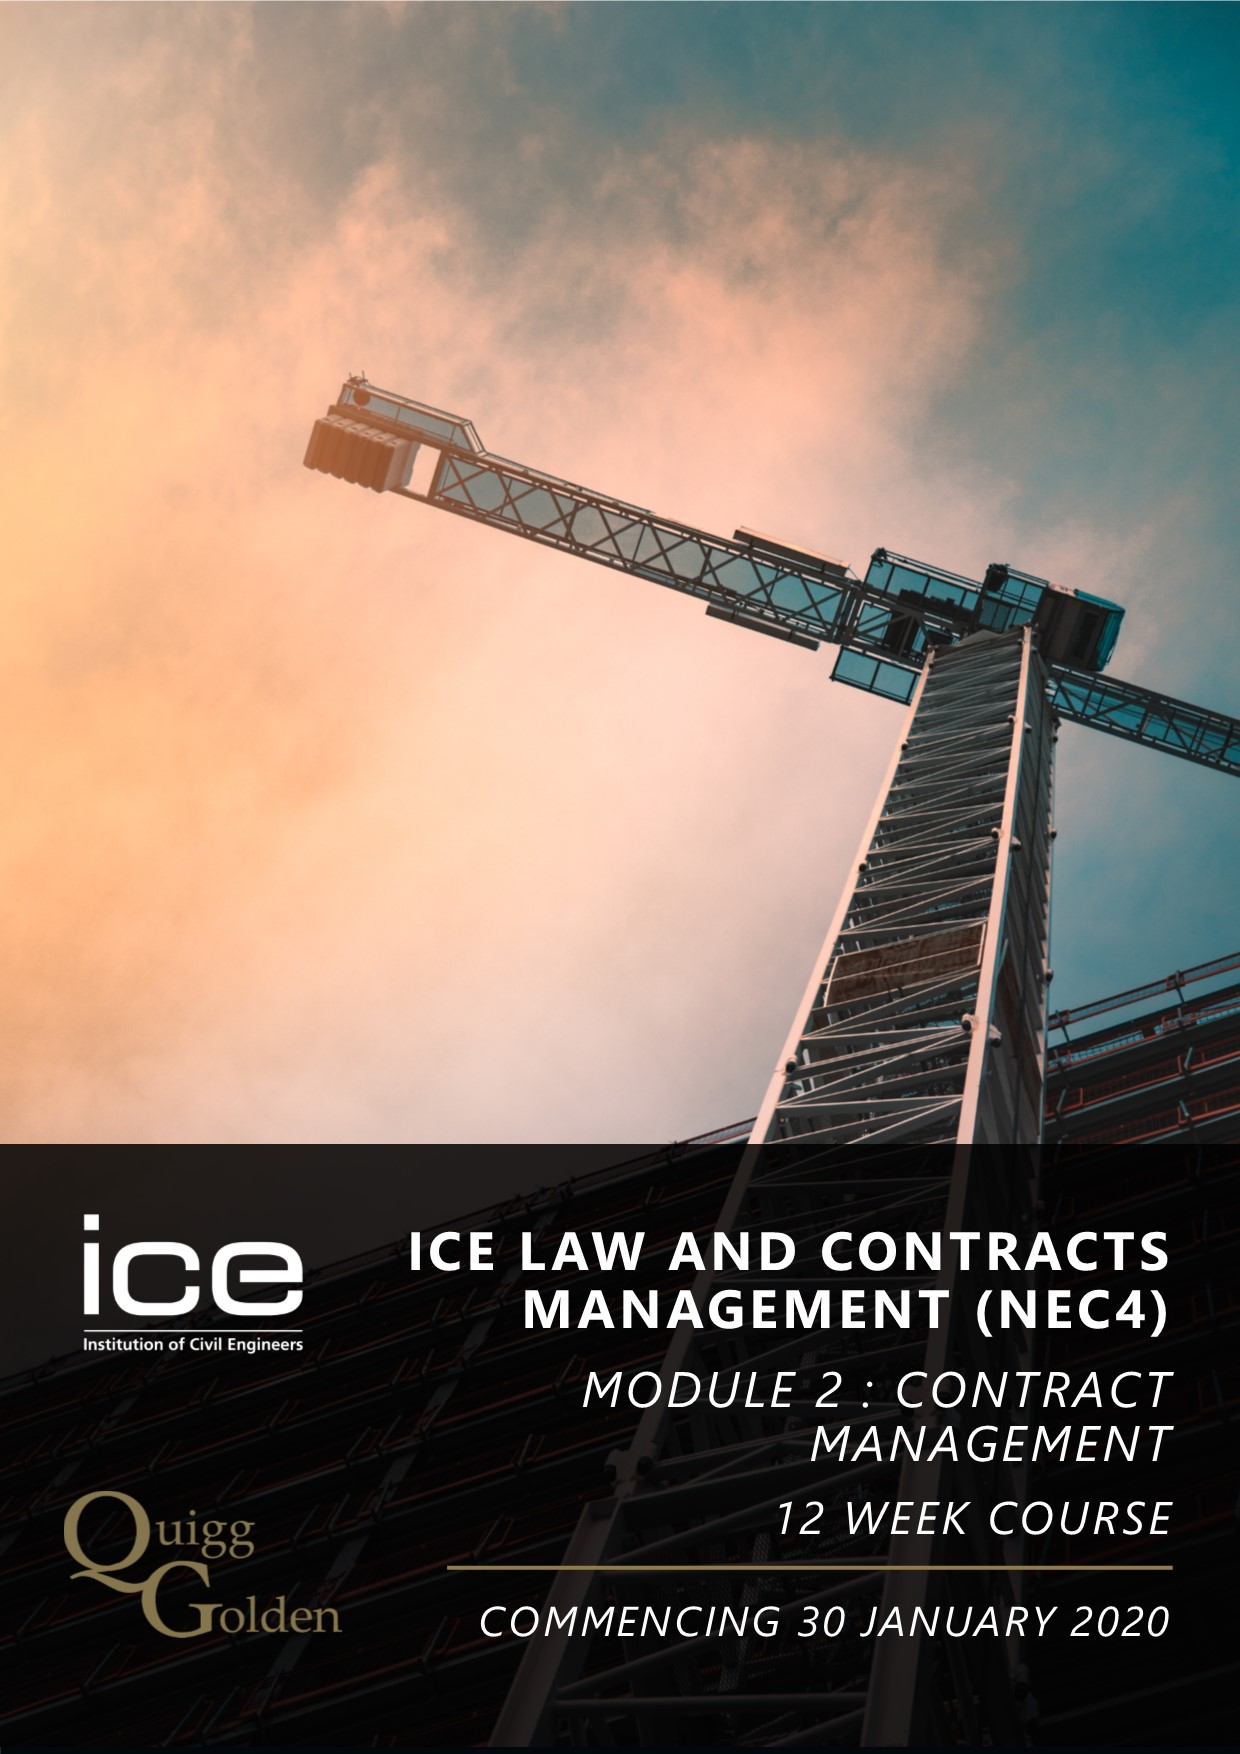 ICE Law and Contracts Management Course